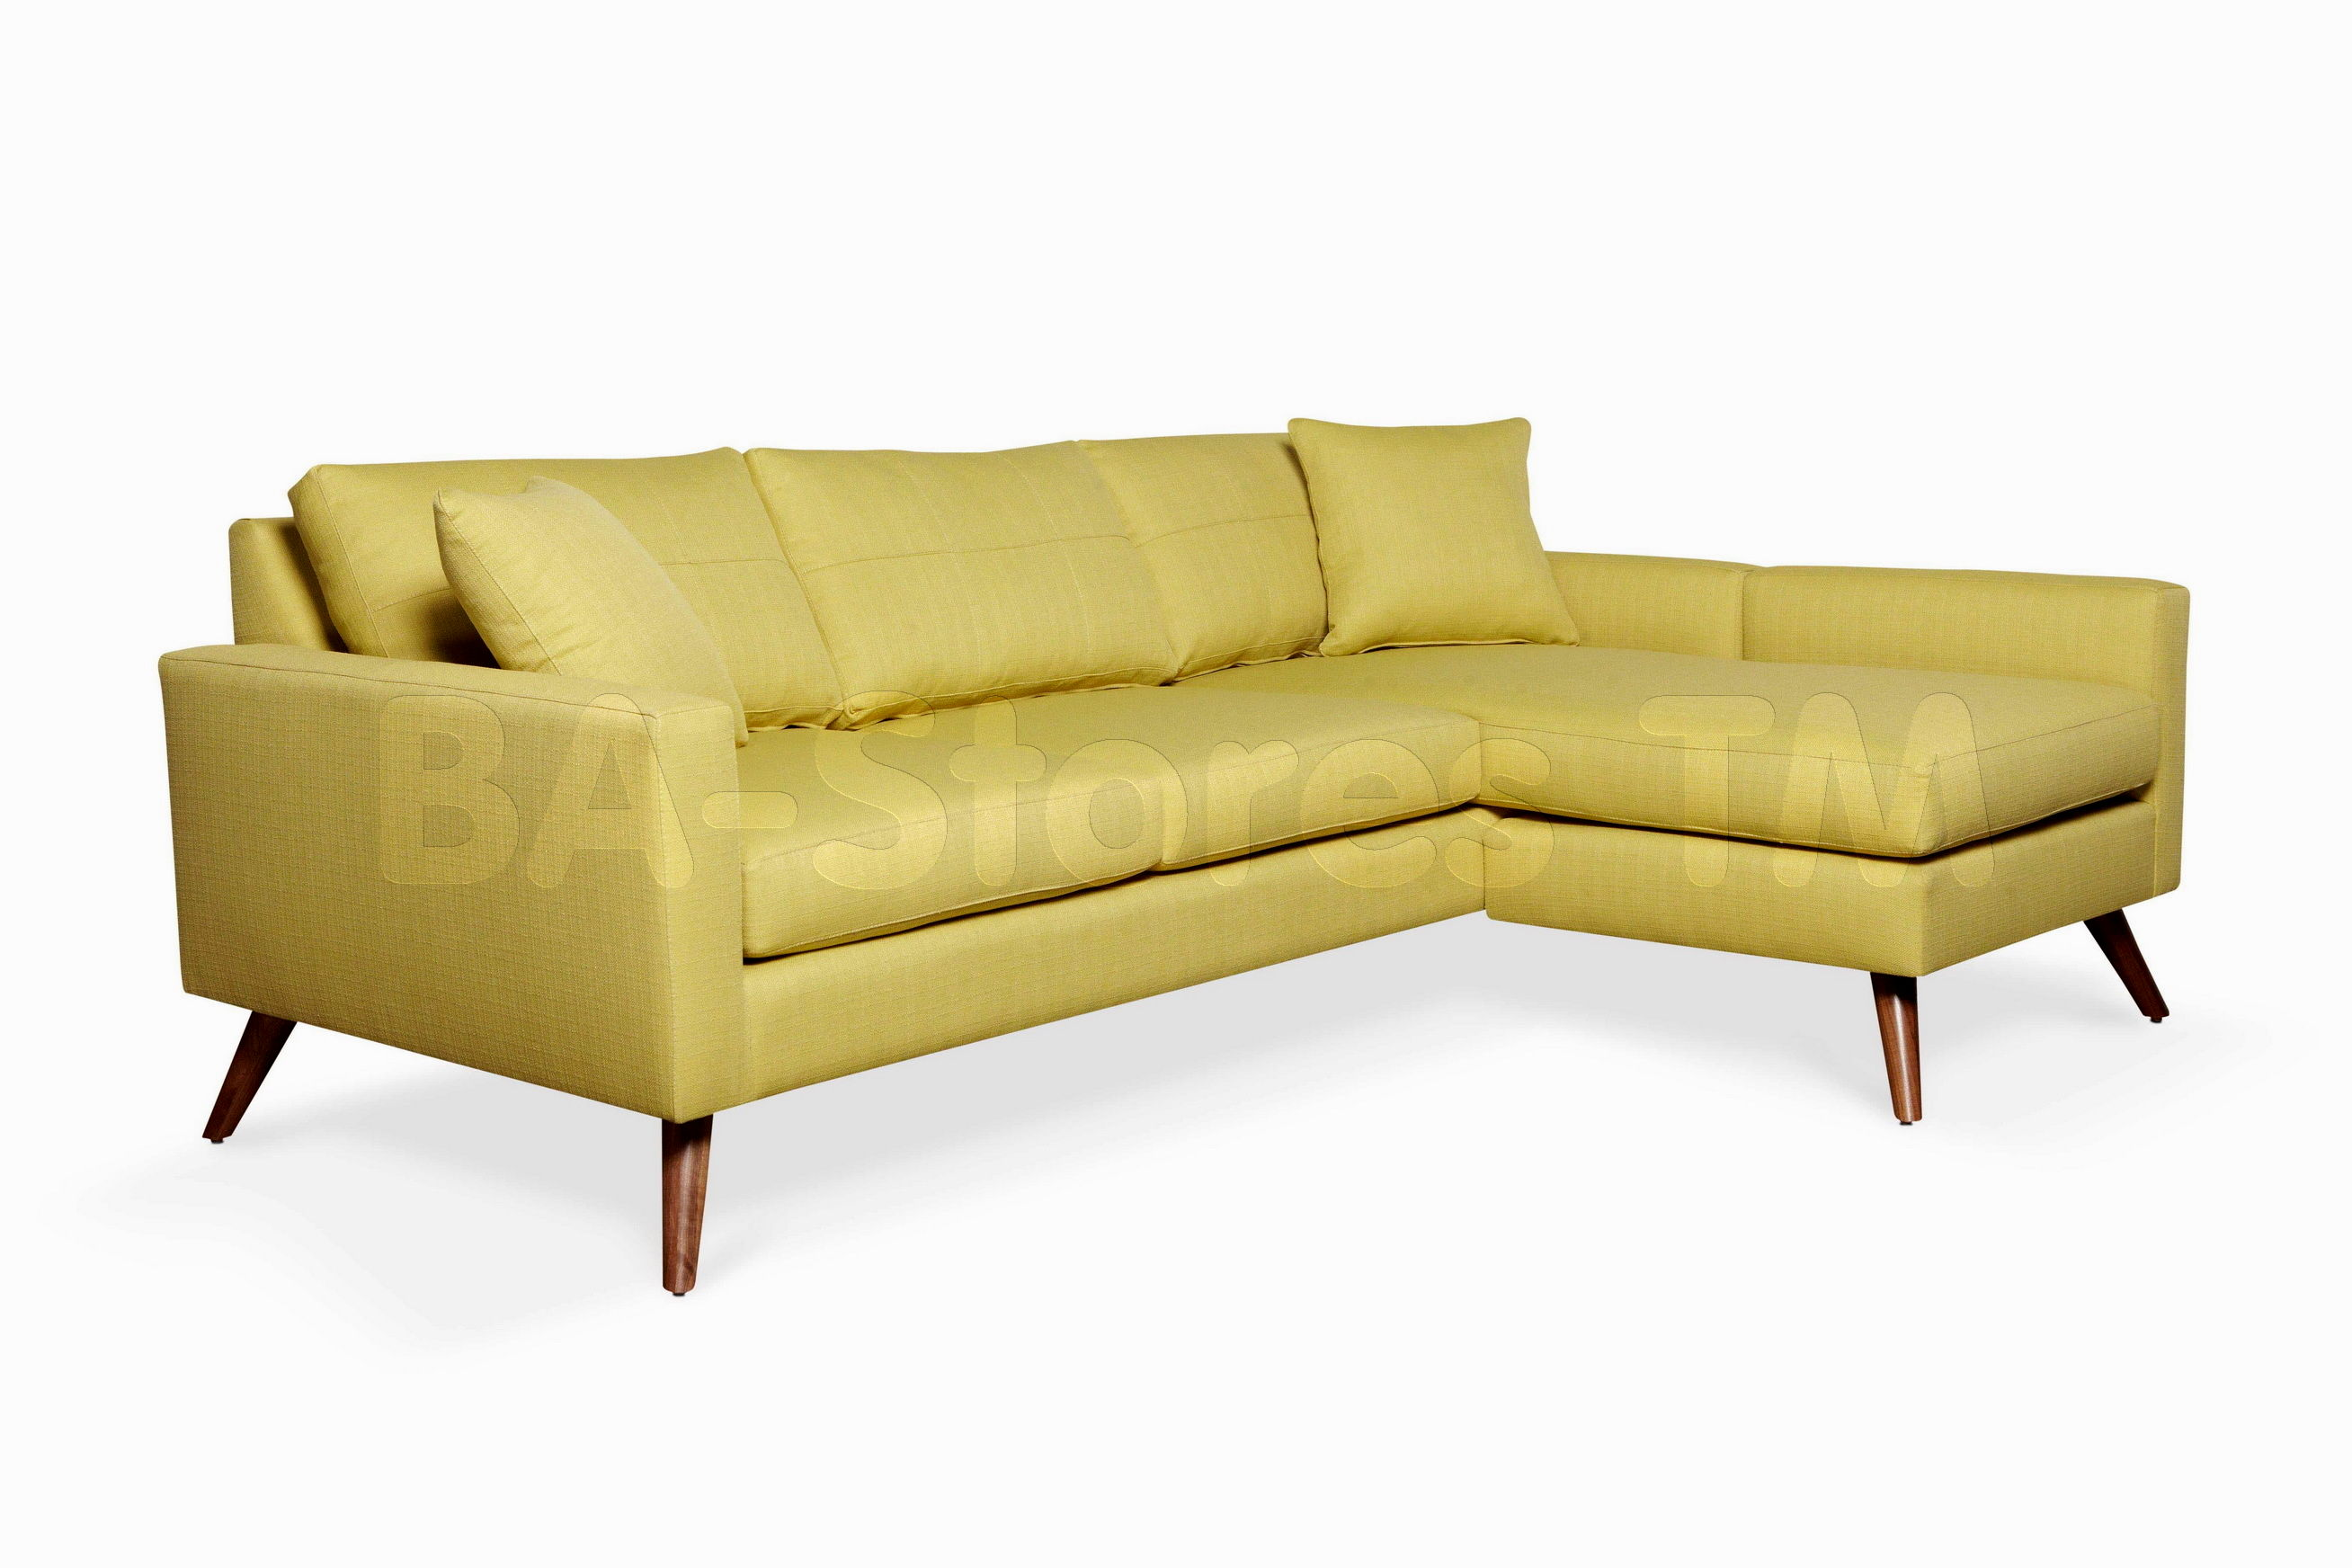 Bank Chaise Lounge Cute Cheap Chaise Lounge Sofa Layout Modern Sofa Design